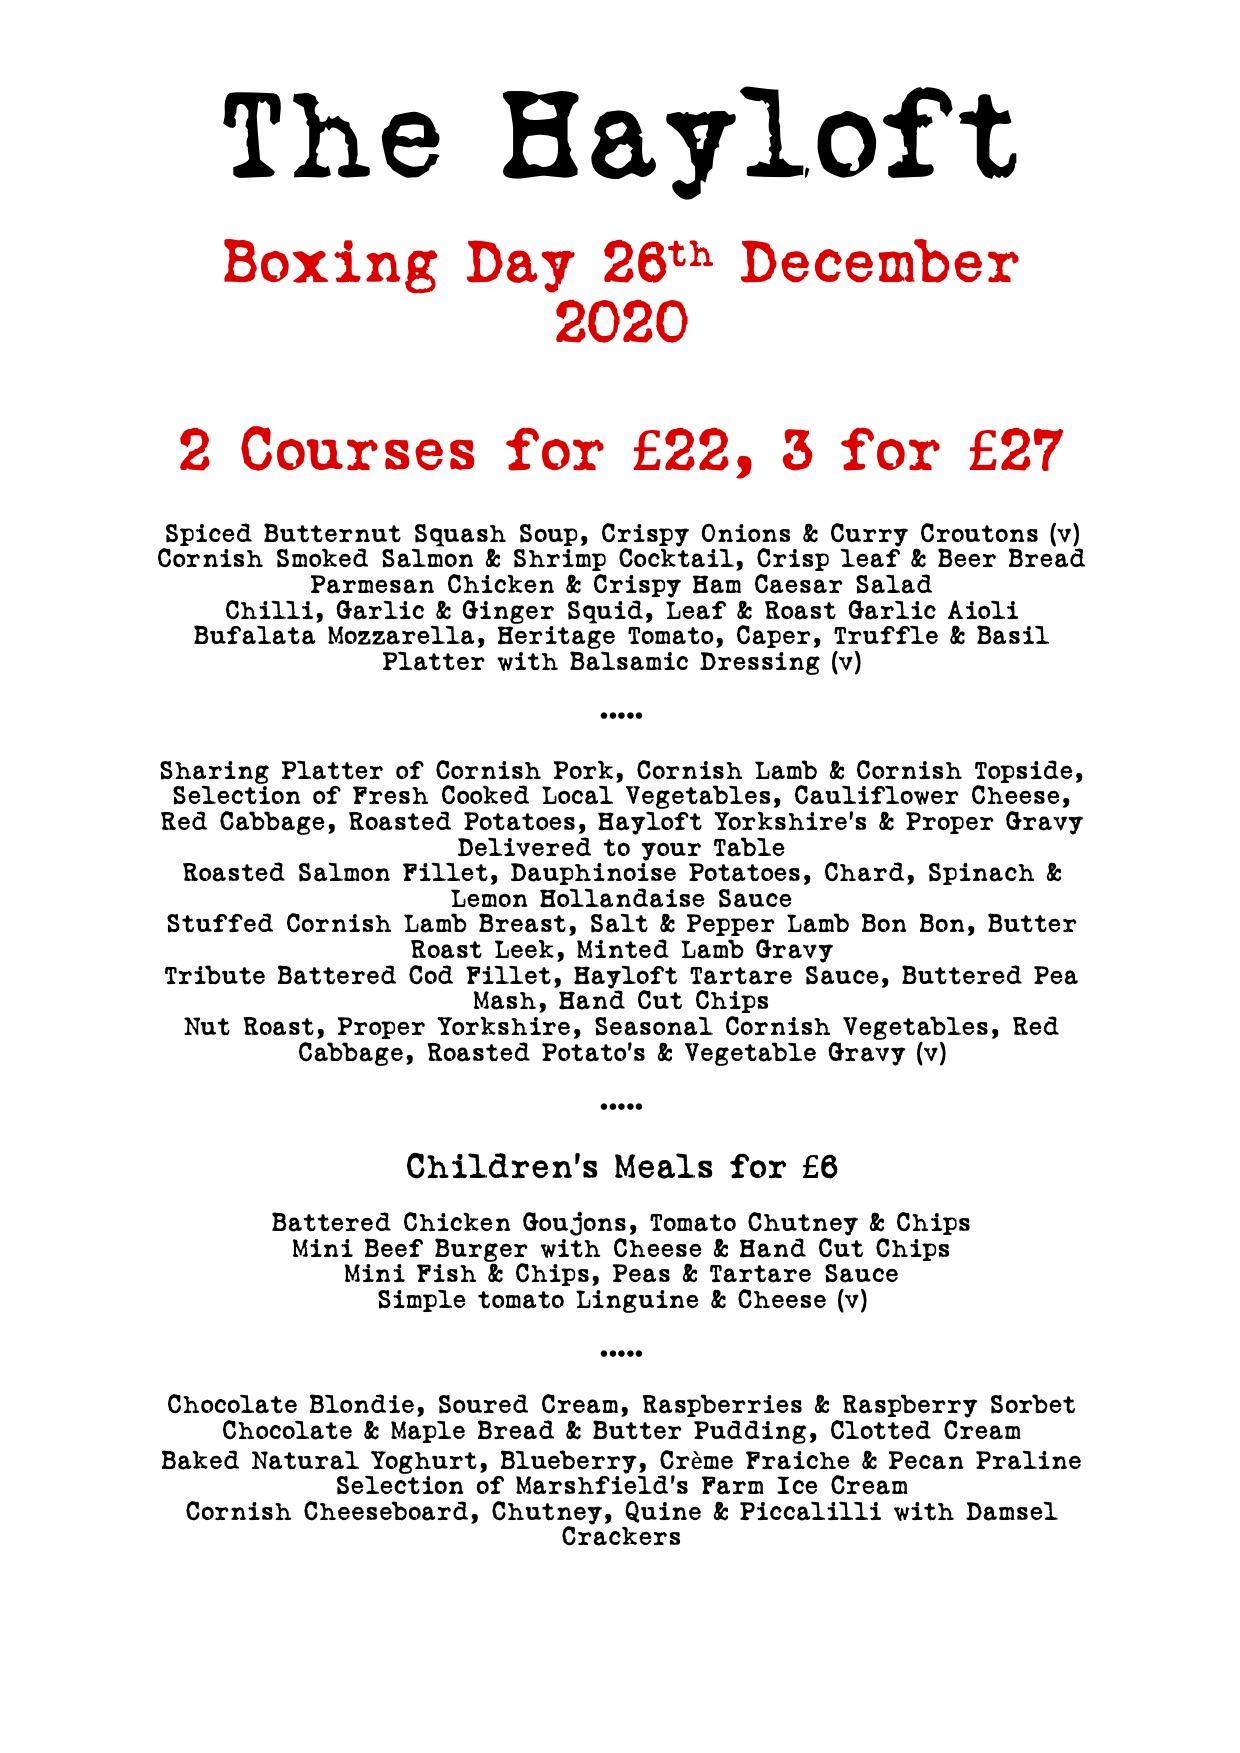 Boxing Day at The Hayloft